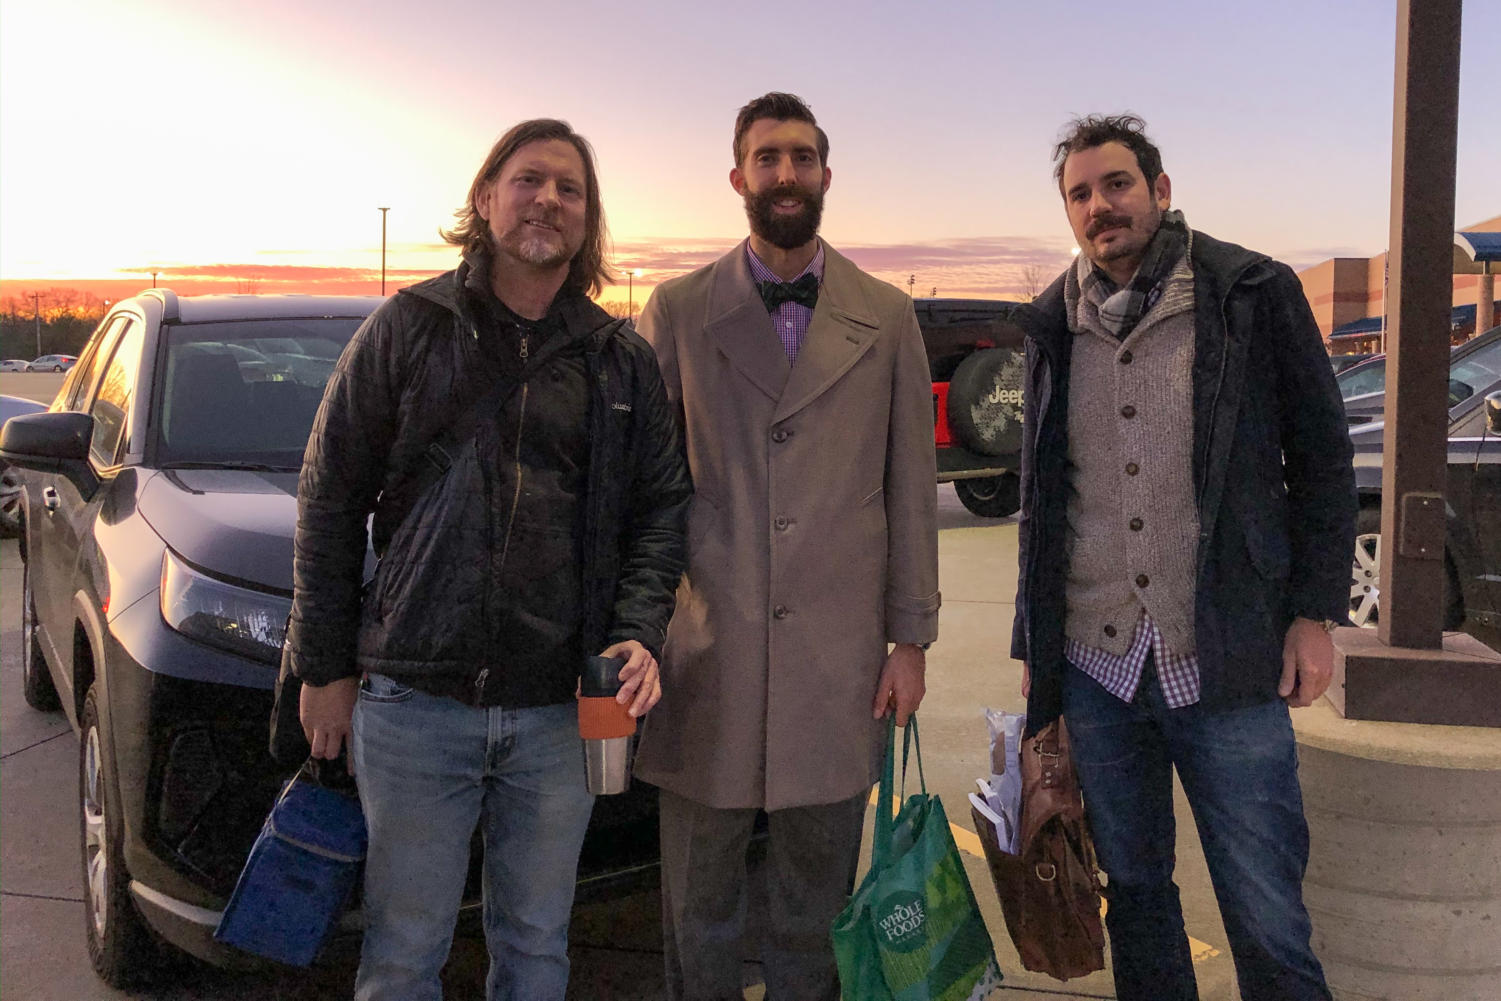 The triumvirate - Mr. Weis, Mr. Hendricks and Mr. Stoll - gather for a photo after their commute to Liberty.